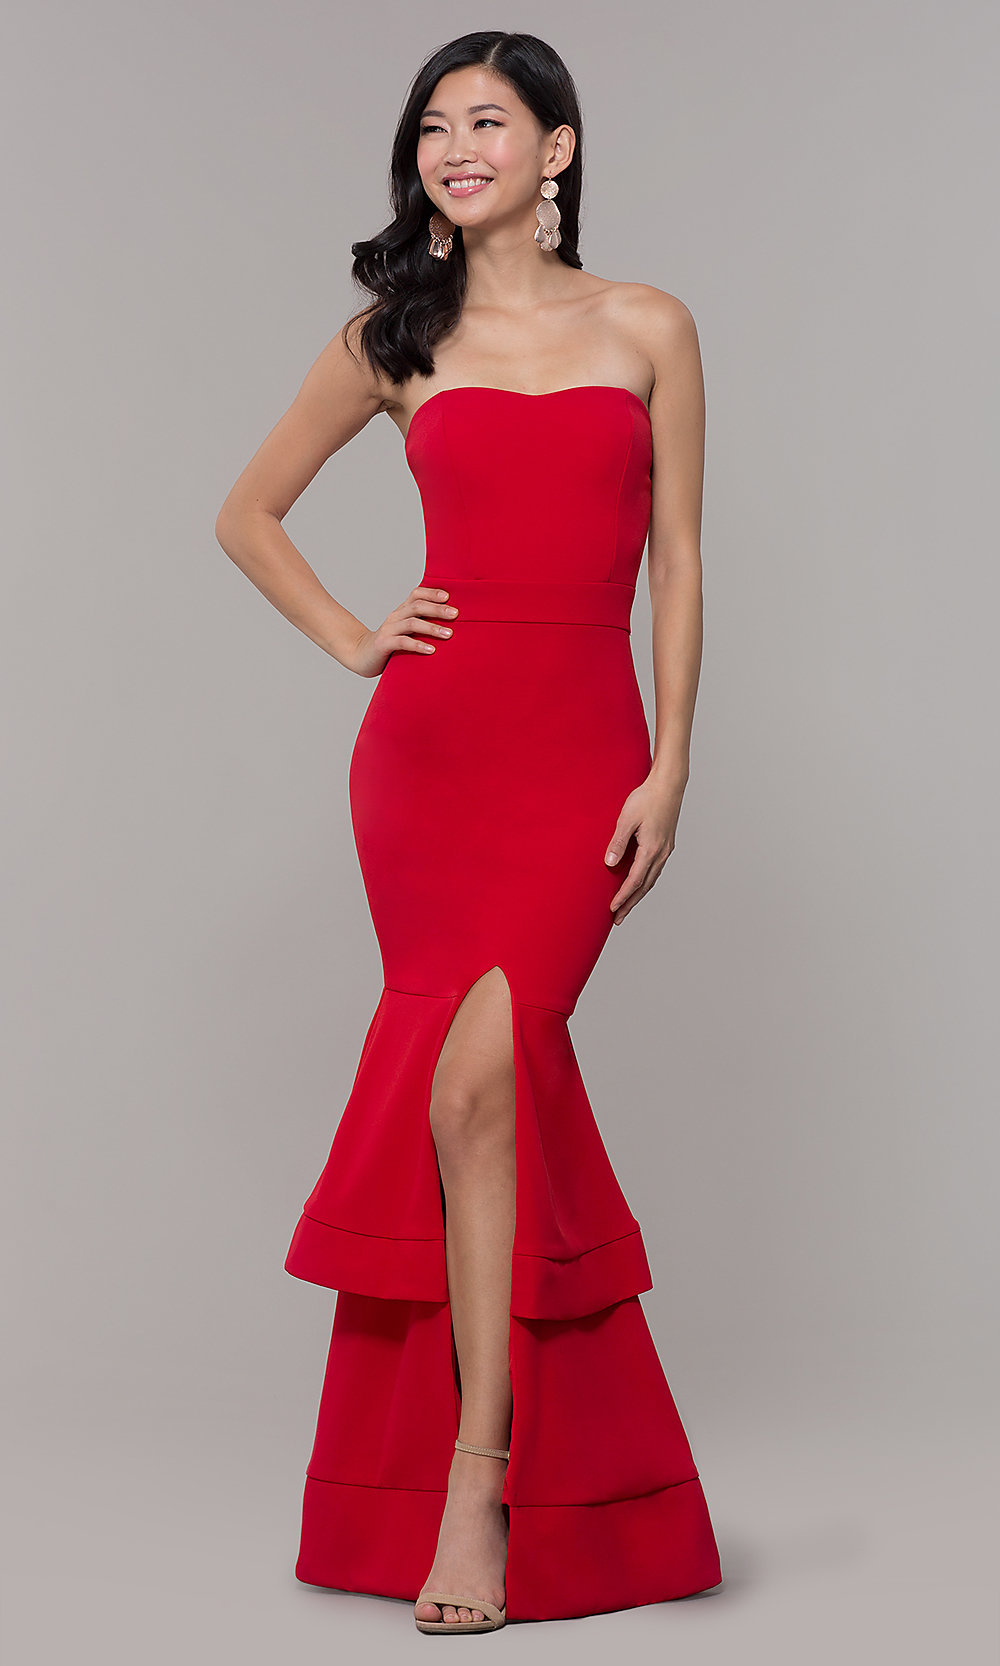 50c59cfbd77 Tiered-Skirt Long Sweetheart Red Prom Dress - PromGirl